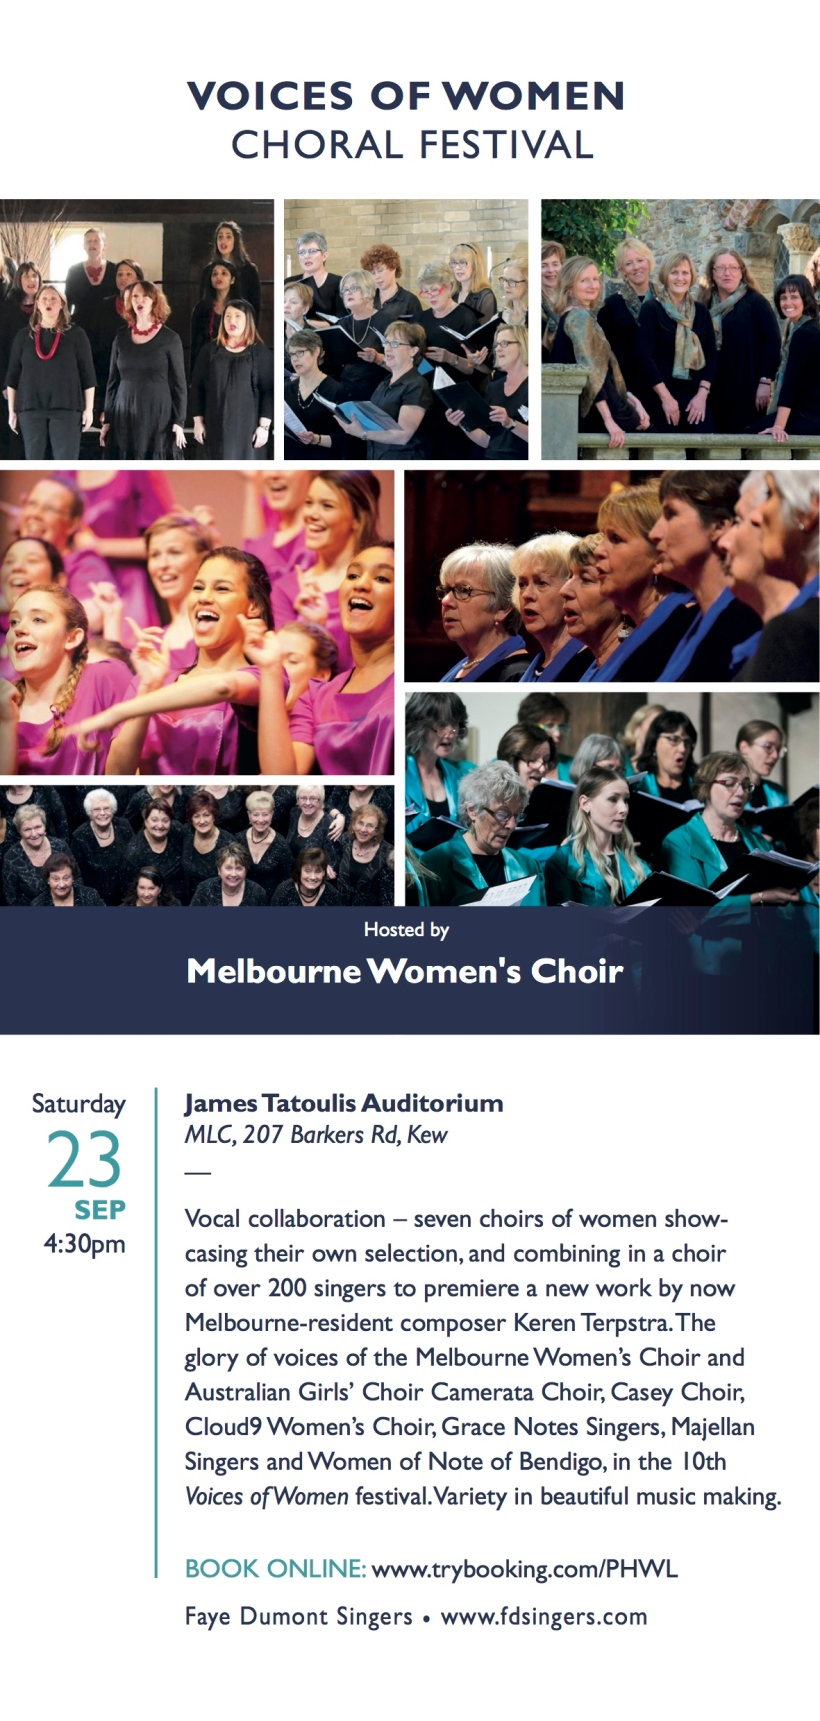 Melbourne Women's Choir - Voices of Women